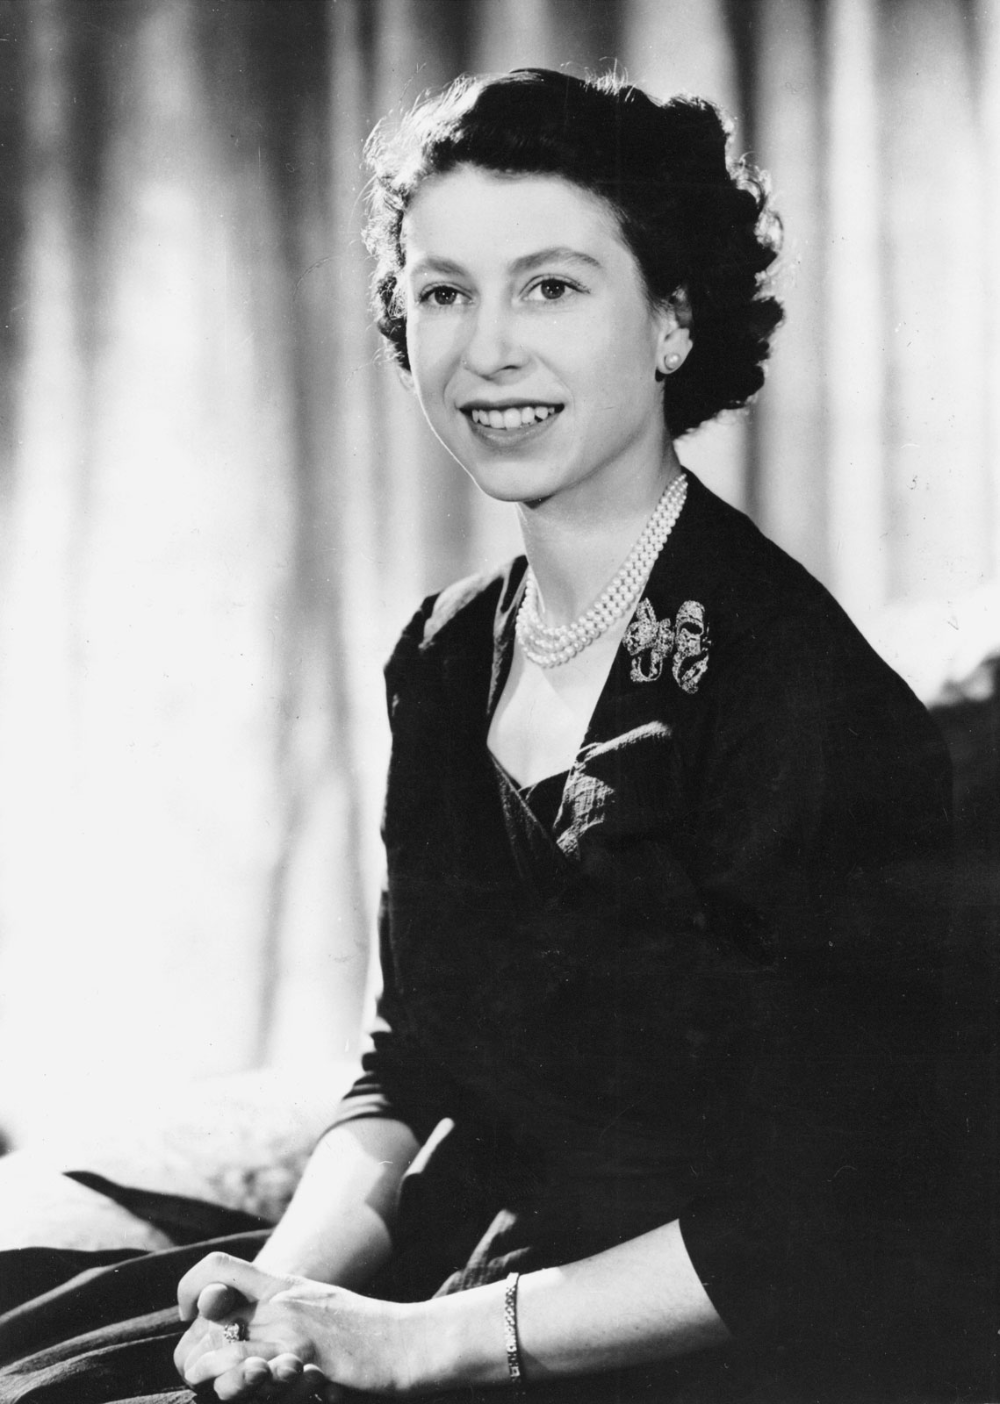 Elizabeth Ii Biography Family Reign Facts Young Queen Elizabeth Queen Elizabeth Princess Elizabeth